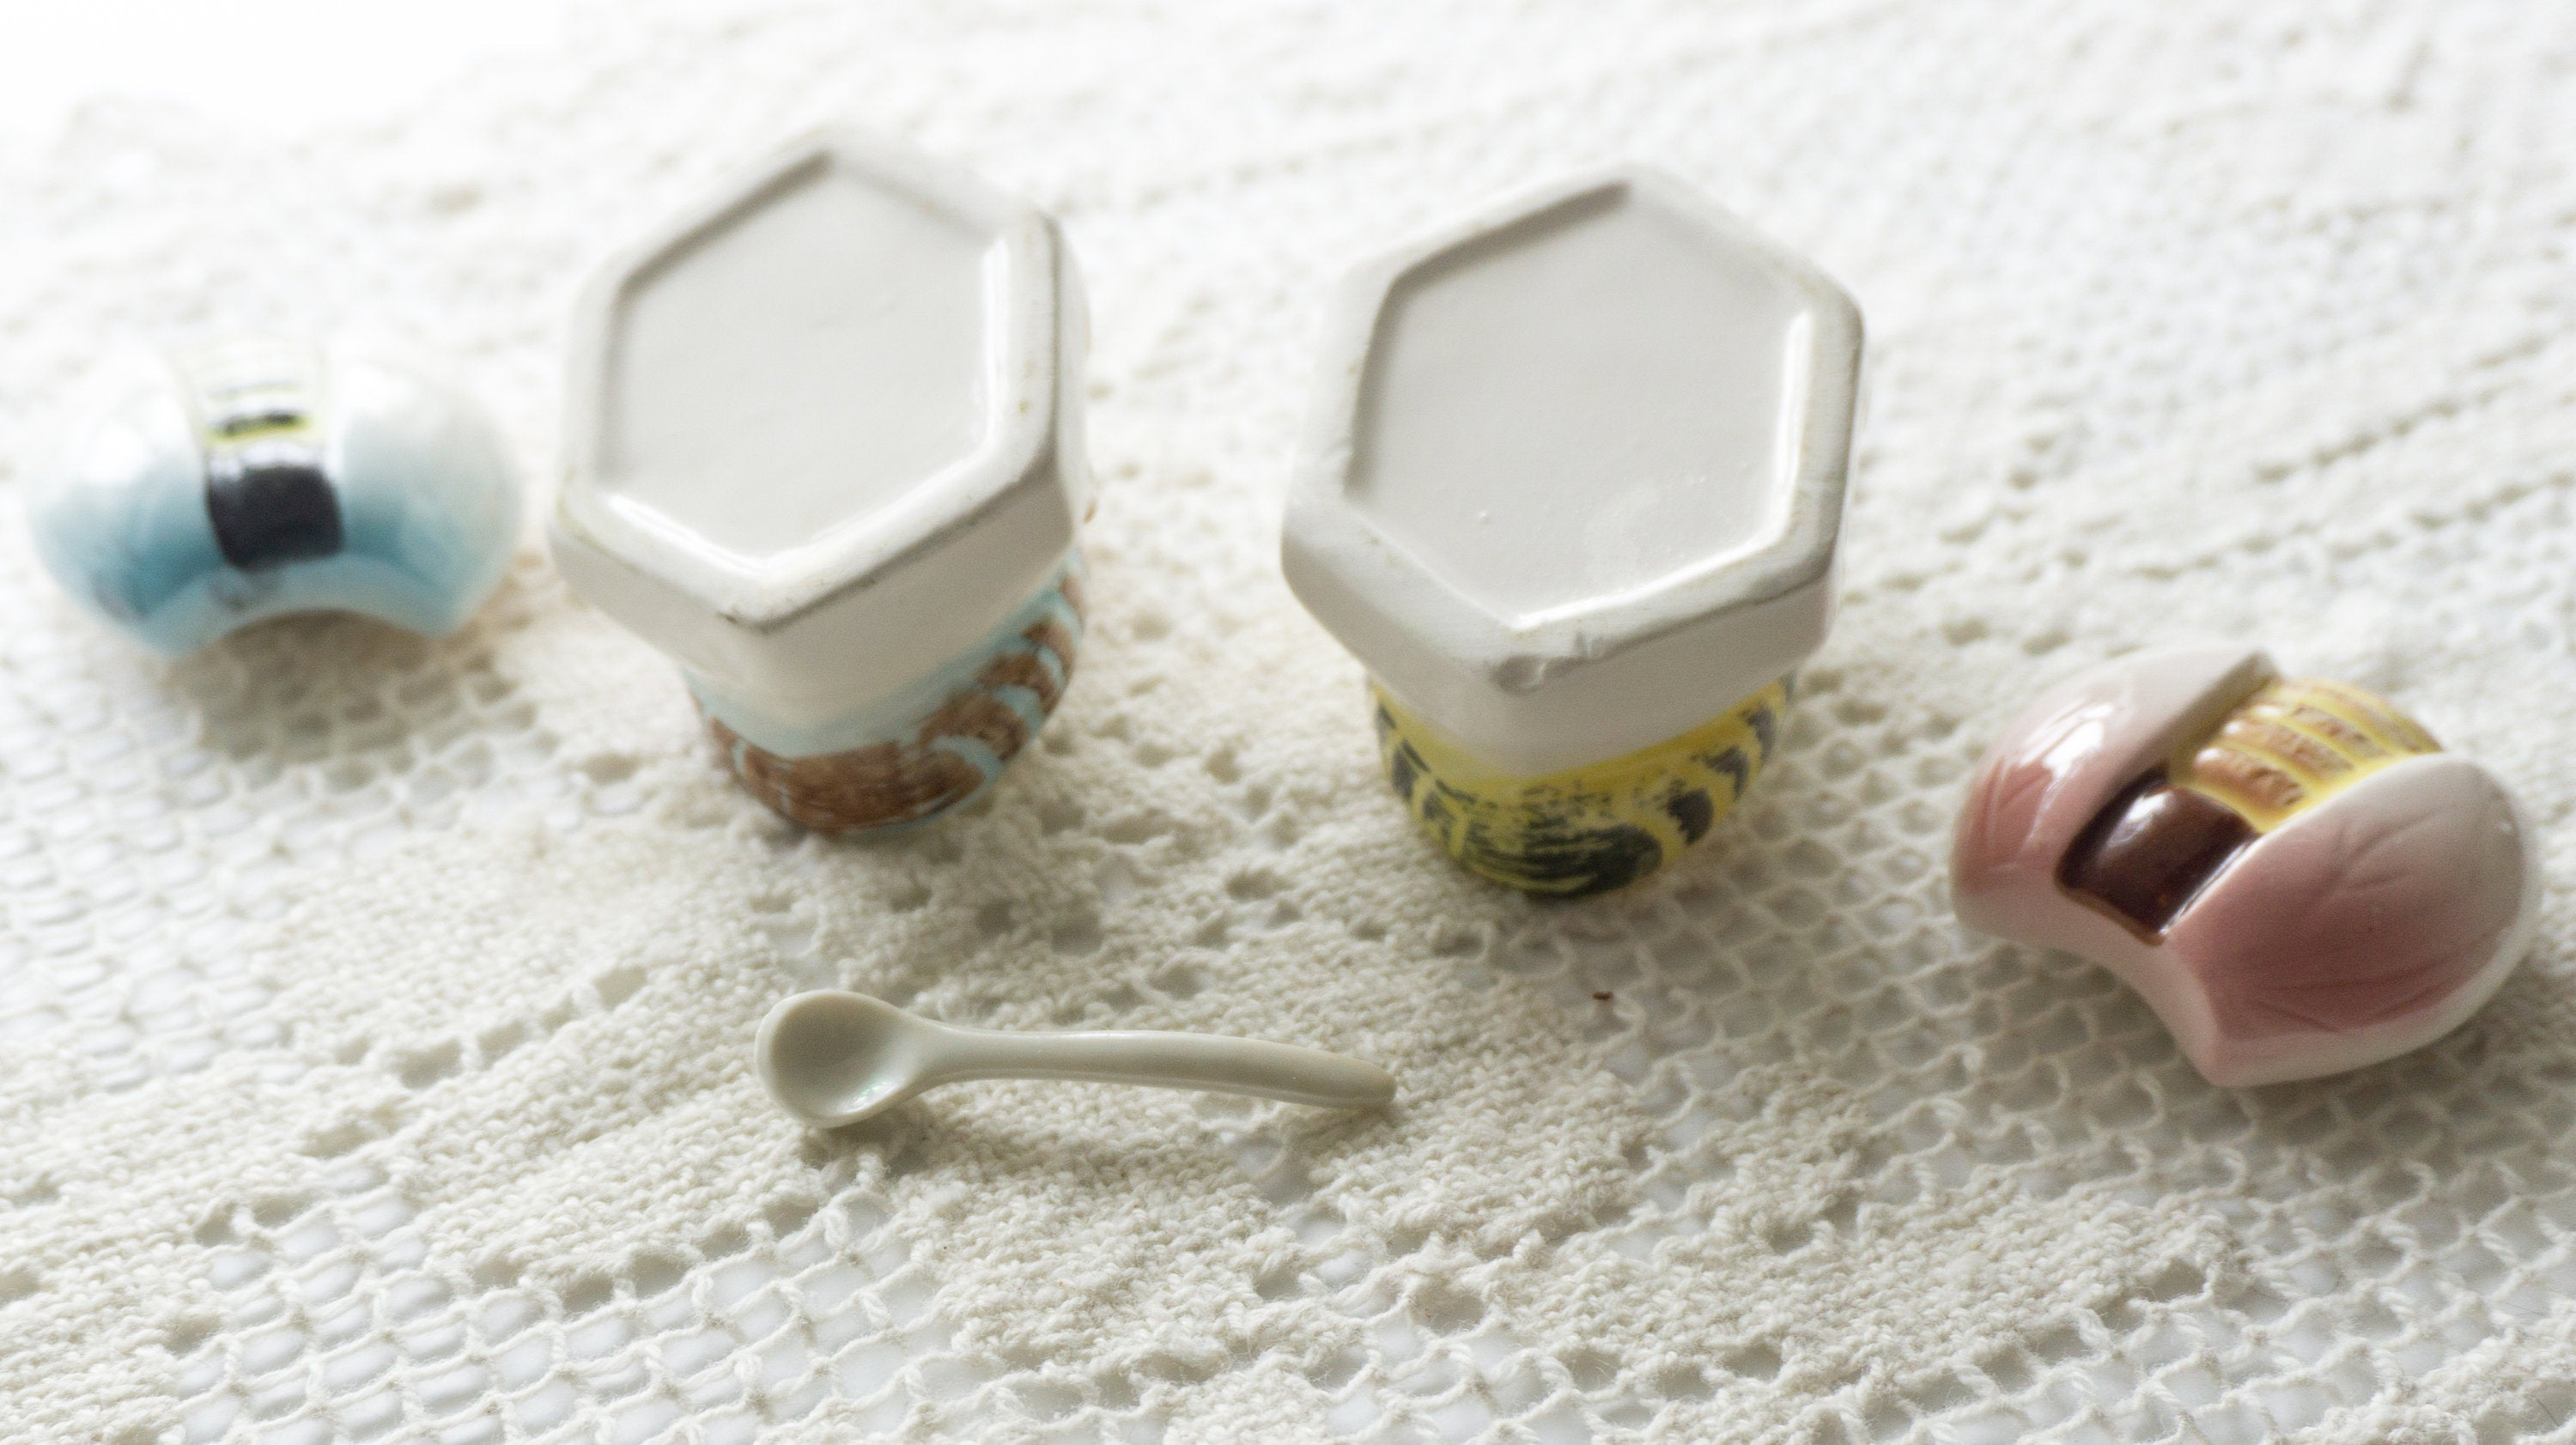 Vintage Ceramic  Honey Bee Salt Wells Dips with Spoon